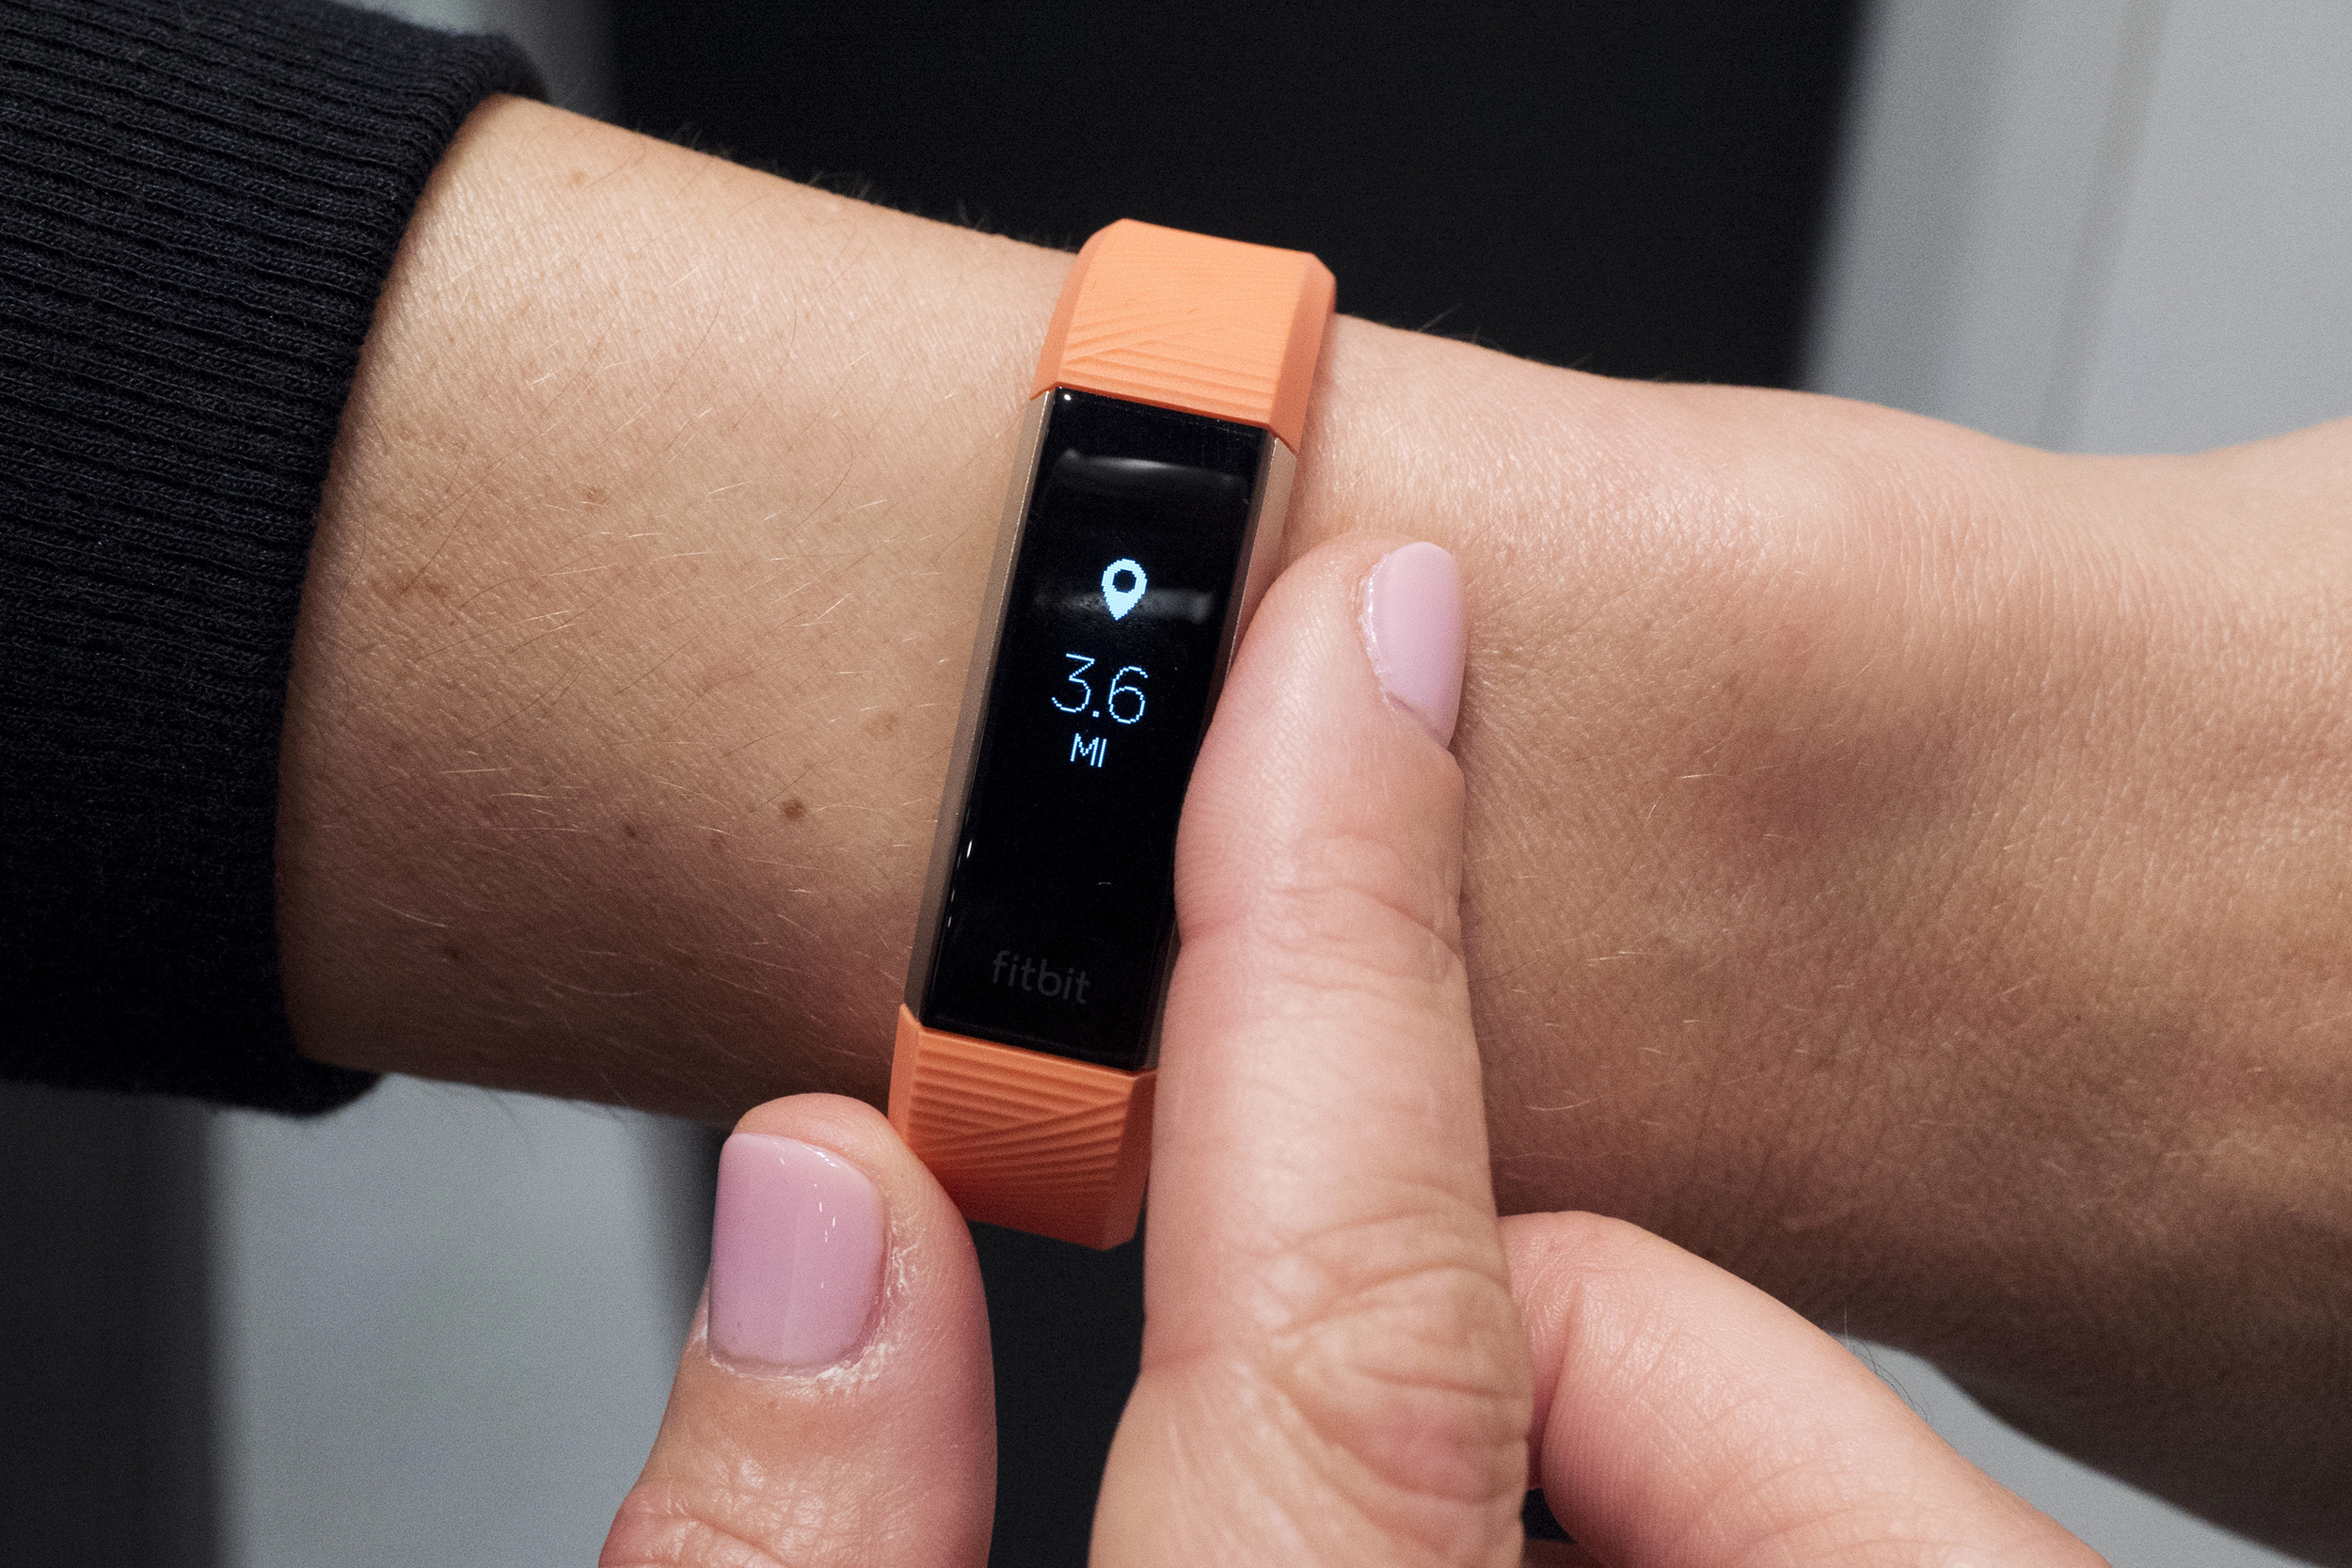 nbcnews.com - Major life insurer says it will require customers to wear health trackers